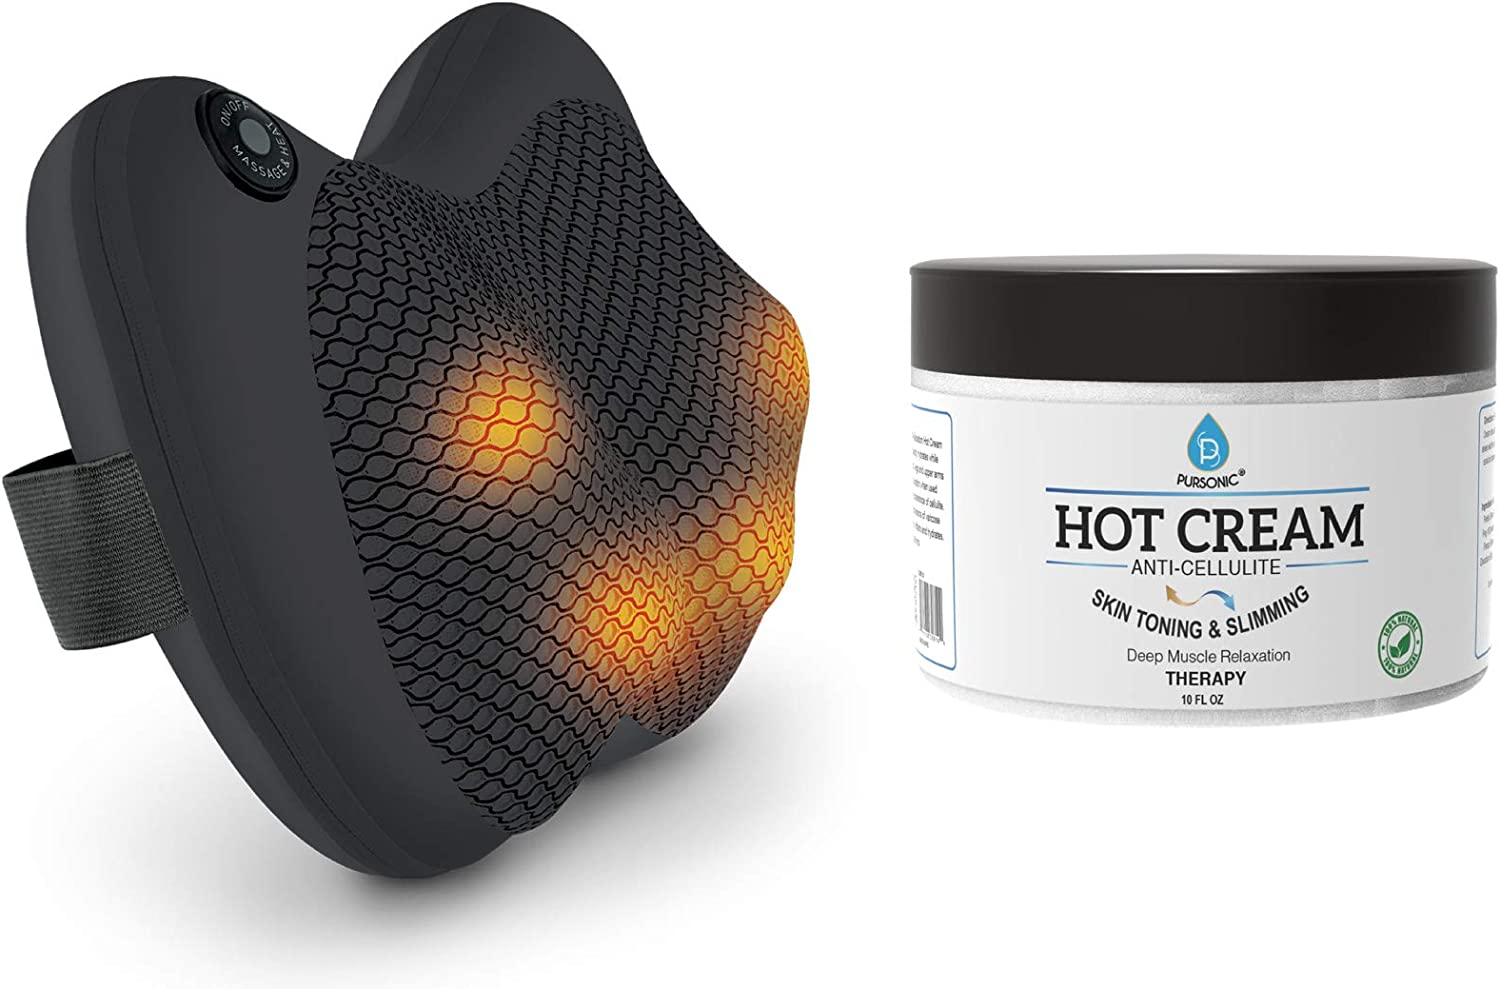 Pursonic Shiatsu Back and Neck Massager,Kneading Massage Pillow with Heat for Shoulders, Lower Back, Calf & Anti Cellulite Muscle Relaxation Hot Cream 10oz, Muscle Relaxant & Pain Relief Cream